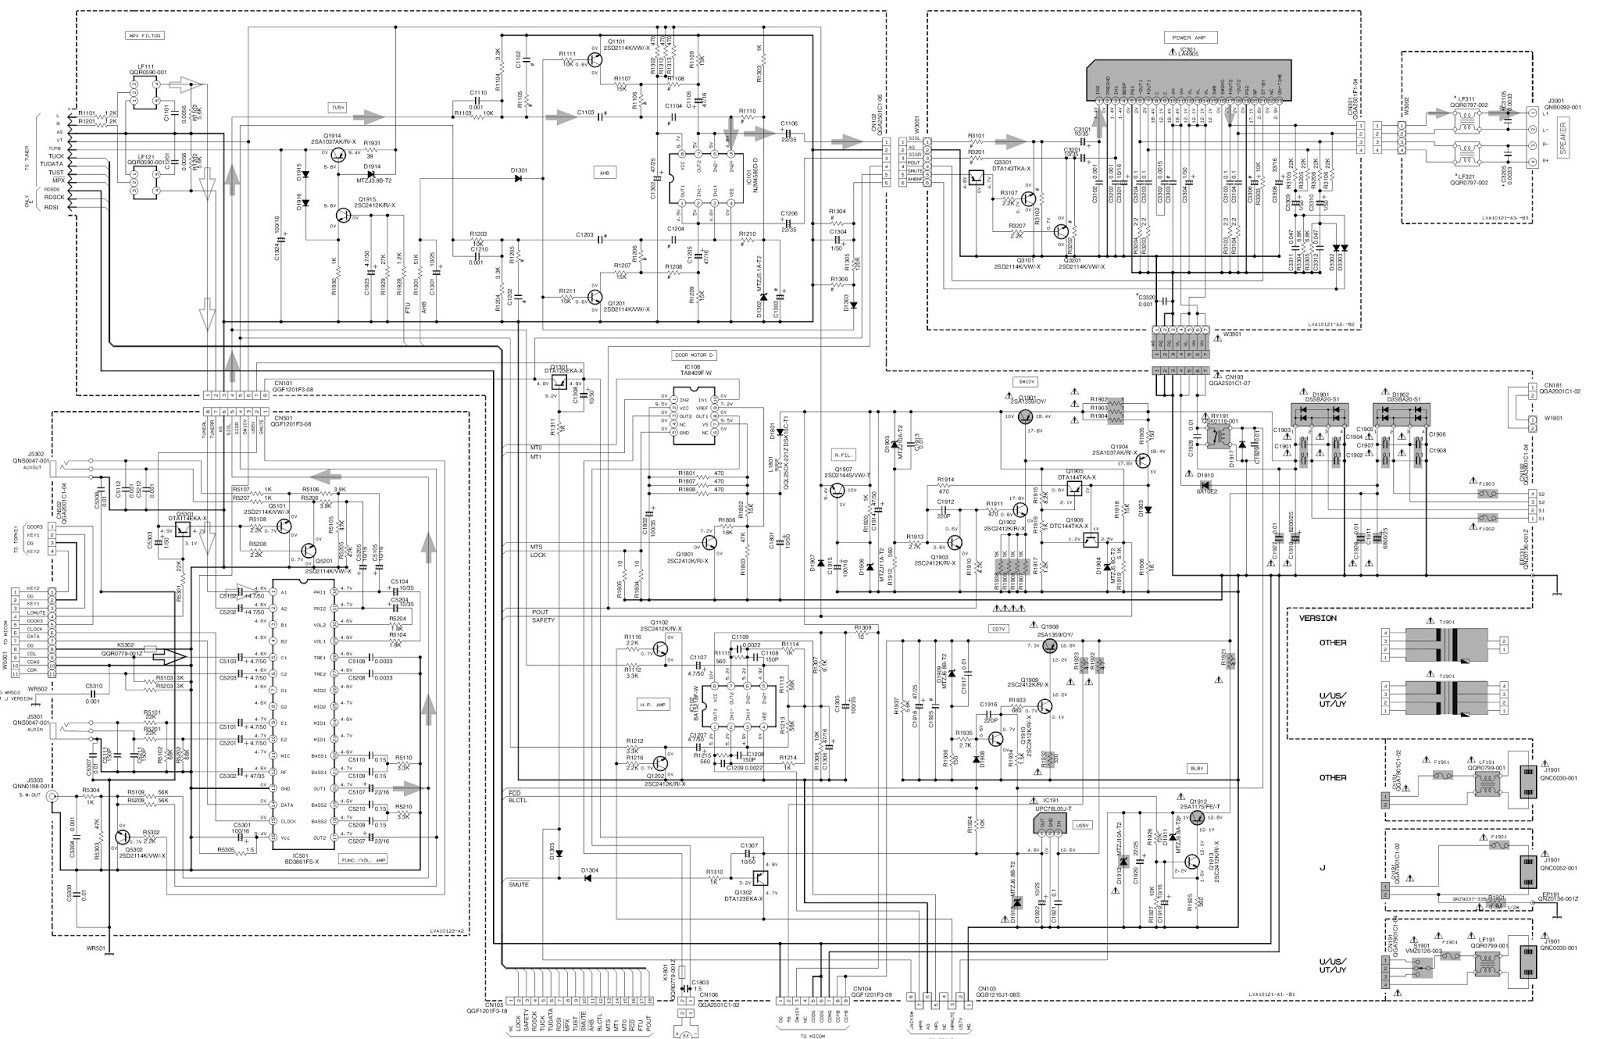 Circuit Diagram Jvc Tv Electrical Wiring Schematic Diagrams Rh Ogmconsulting Co For A Television Free